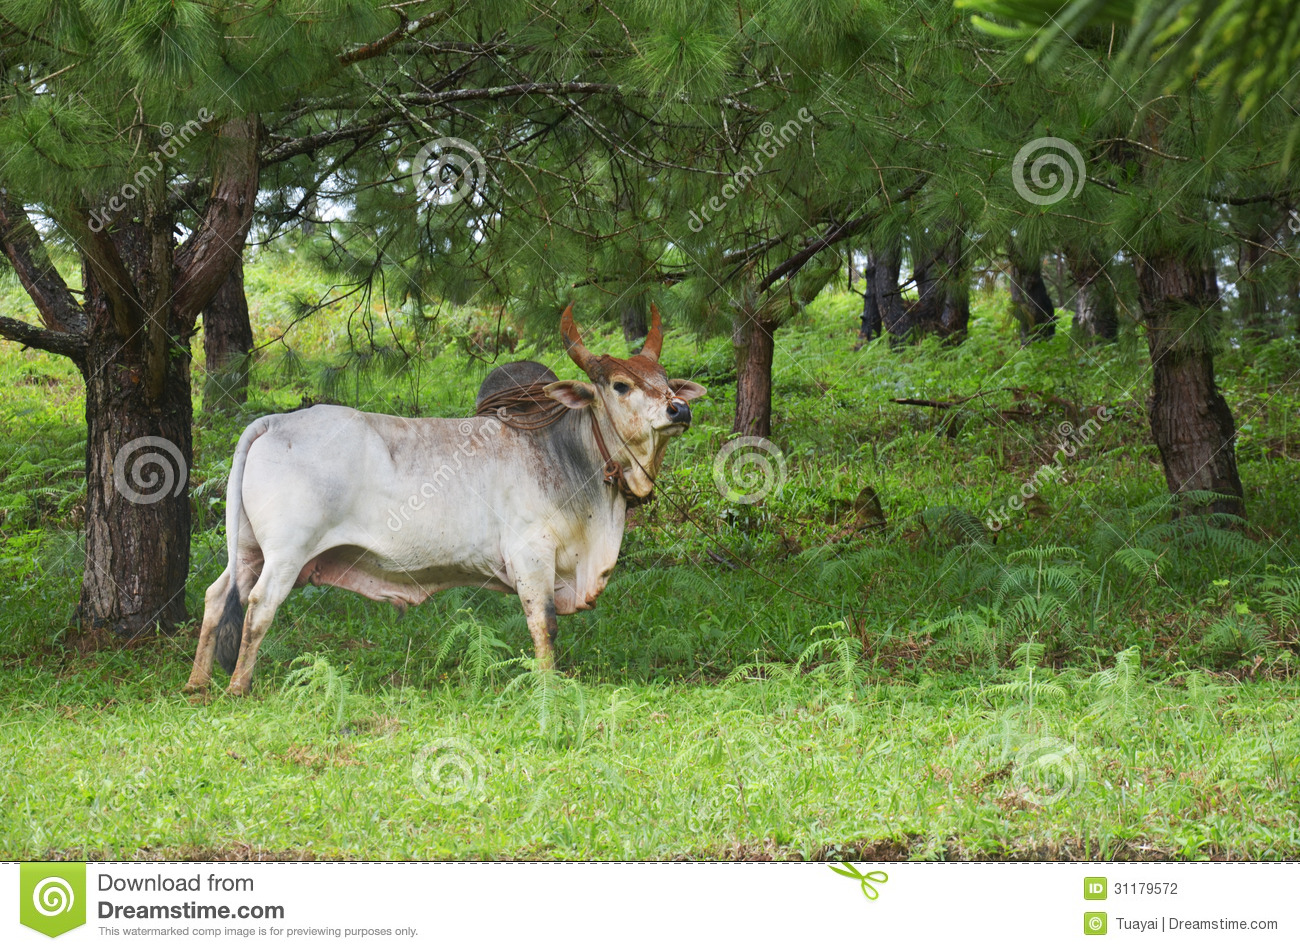 OX at thailand country